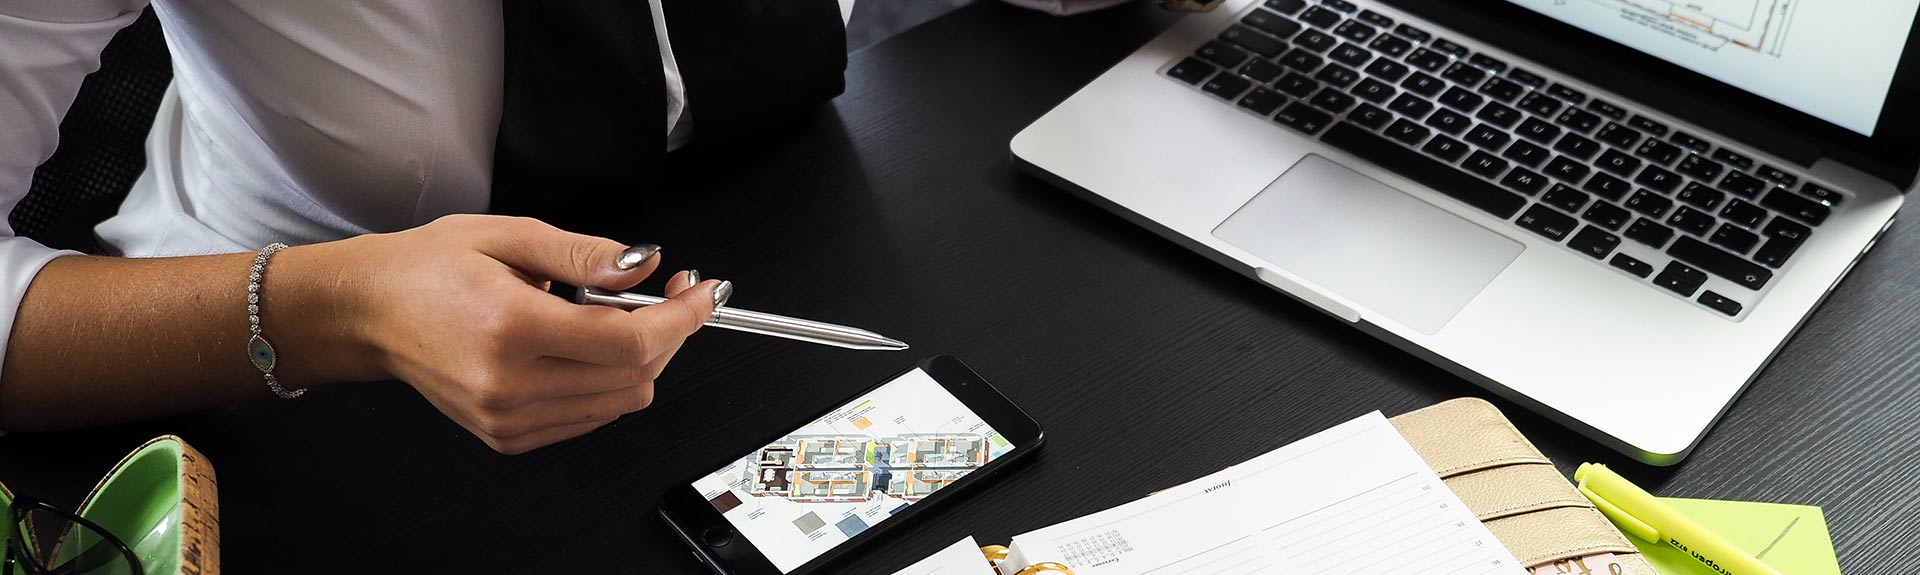 woman with pen and laptop looking at drawings